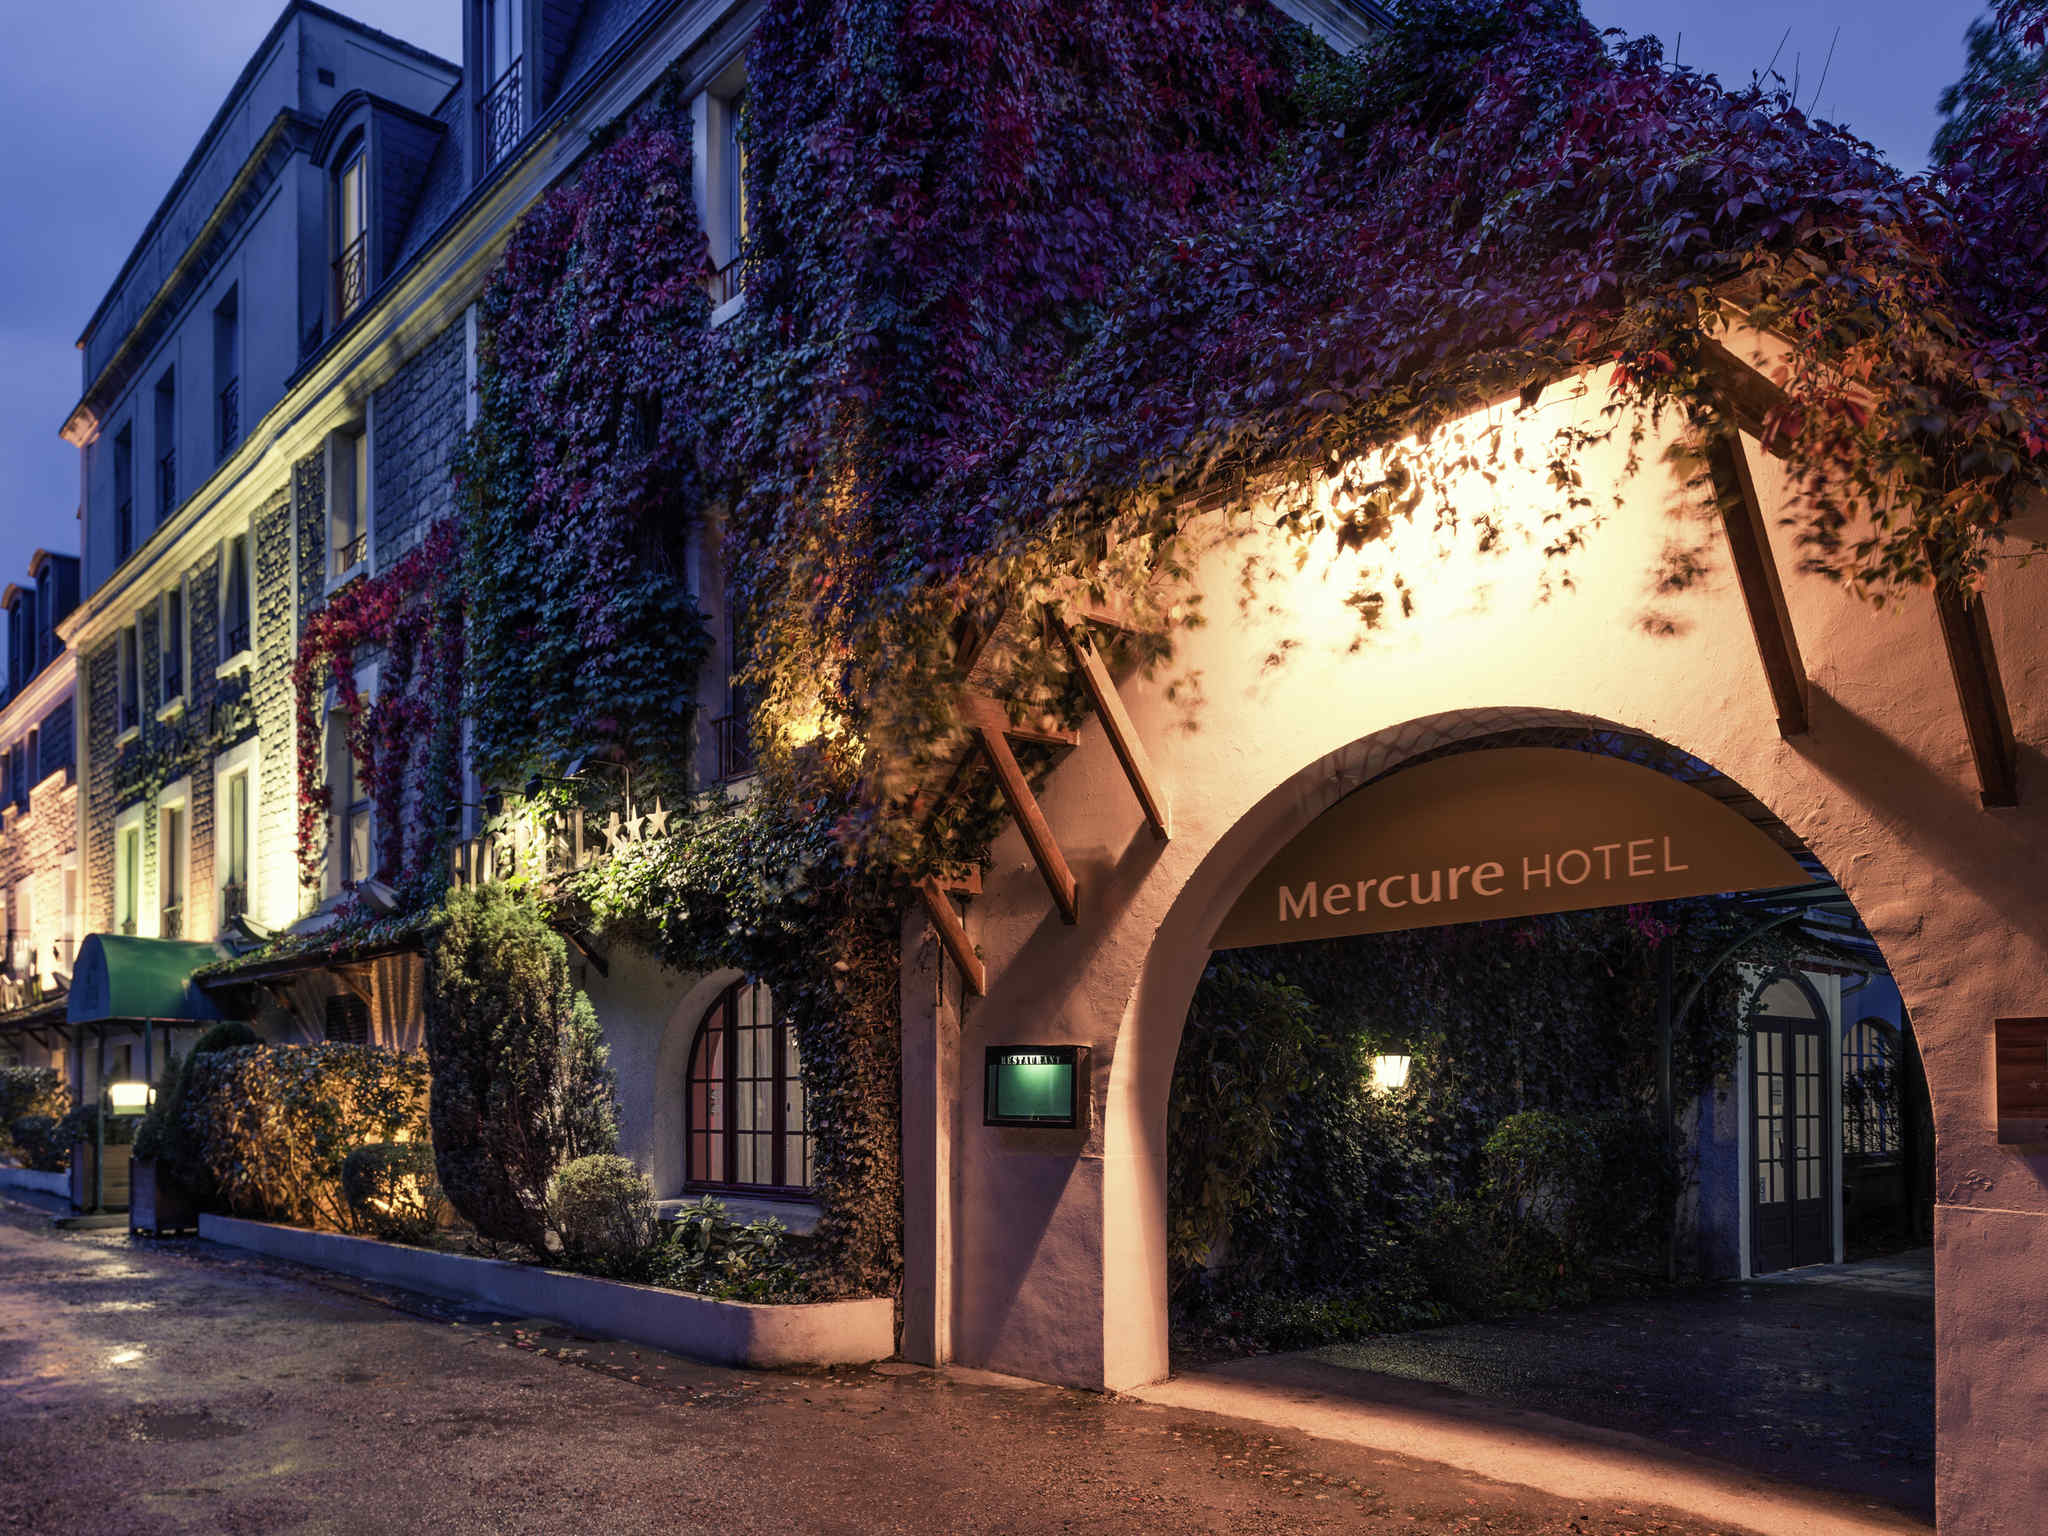 Отель — Hôtel Mercure Paris Ouest Saint-Germain